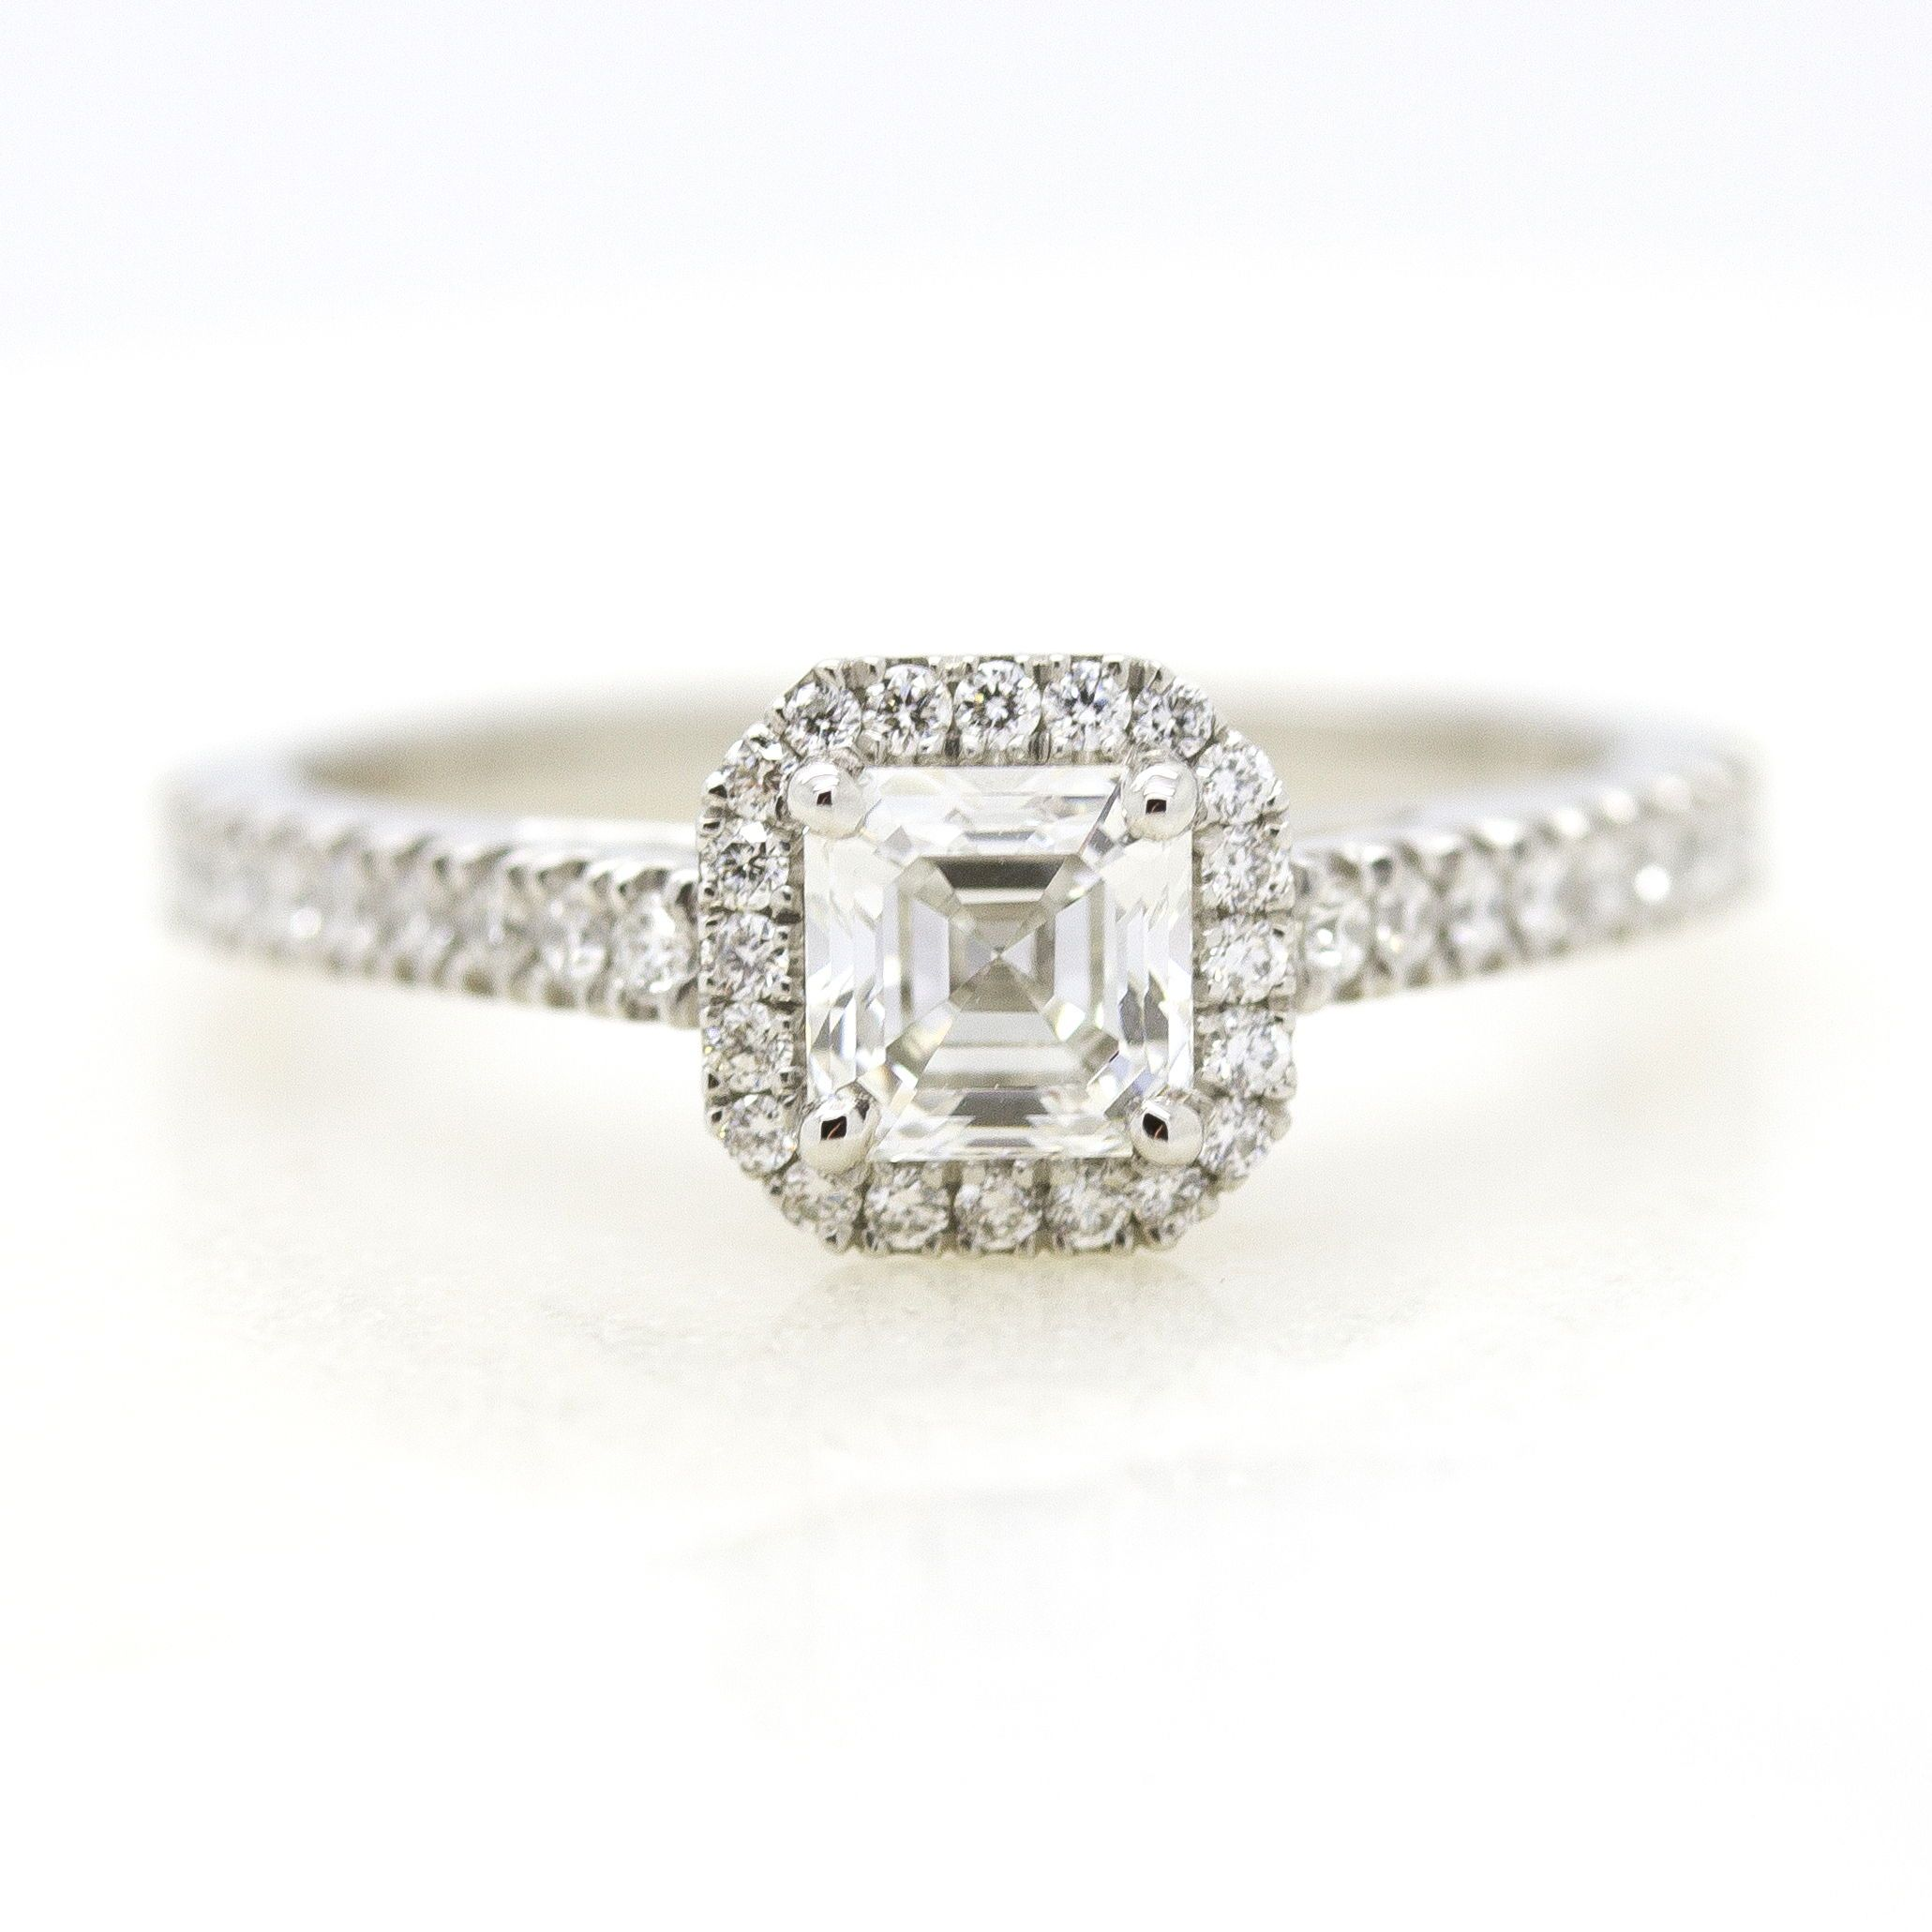 ring rings custom engagement jewellery gia asscher views more platinum untreated cut ct white sapphire